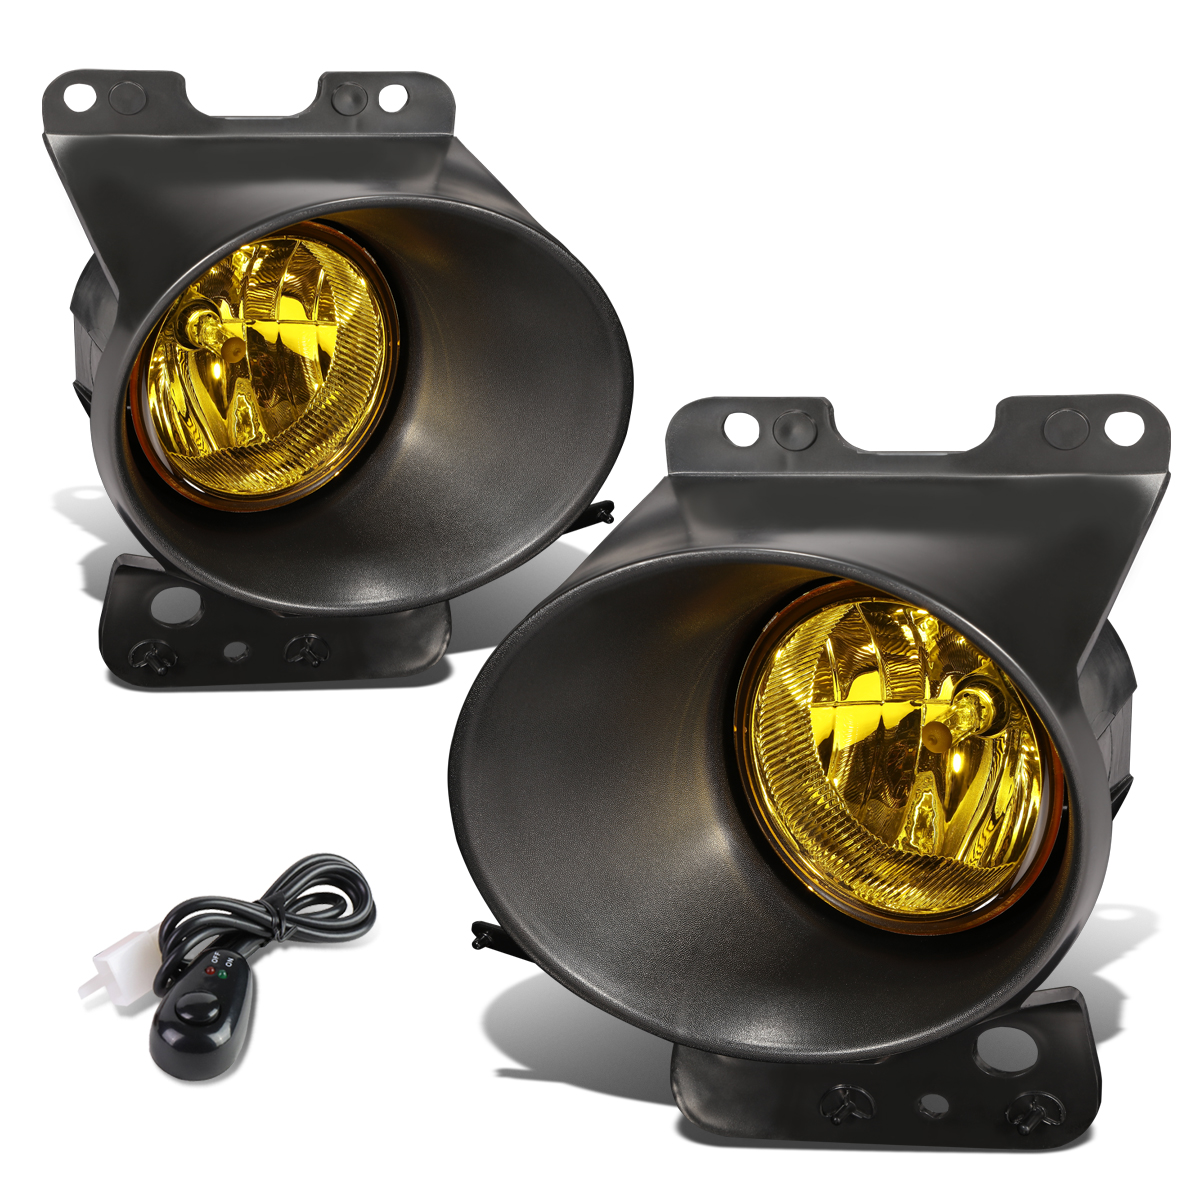 FO2592229 Replacement For Ford F150 F-150 Replacement For Lincoln Mark 2011 2012 2013 2014 Clear Lens Front Bumper Fog Lights Round Driving Lamps Assembly Replacements BL3Z15200A